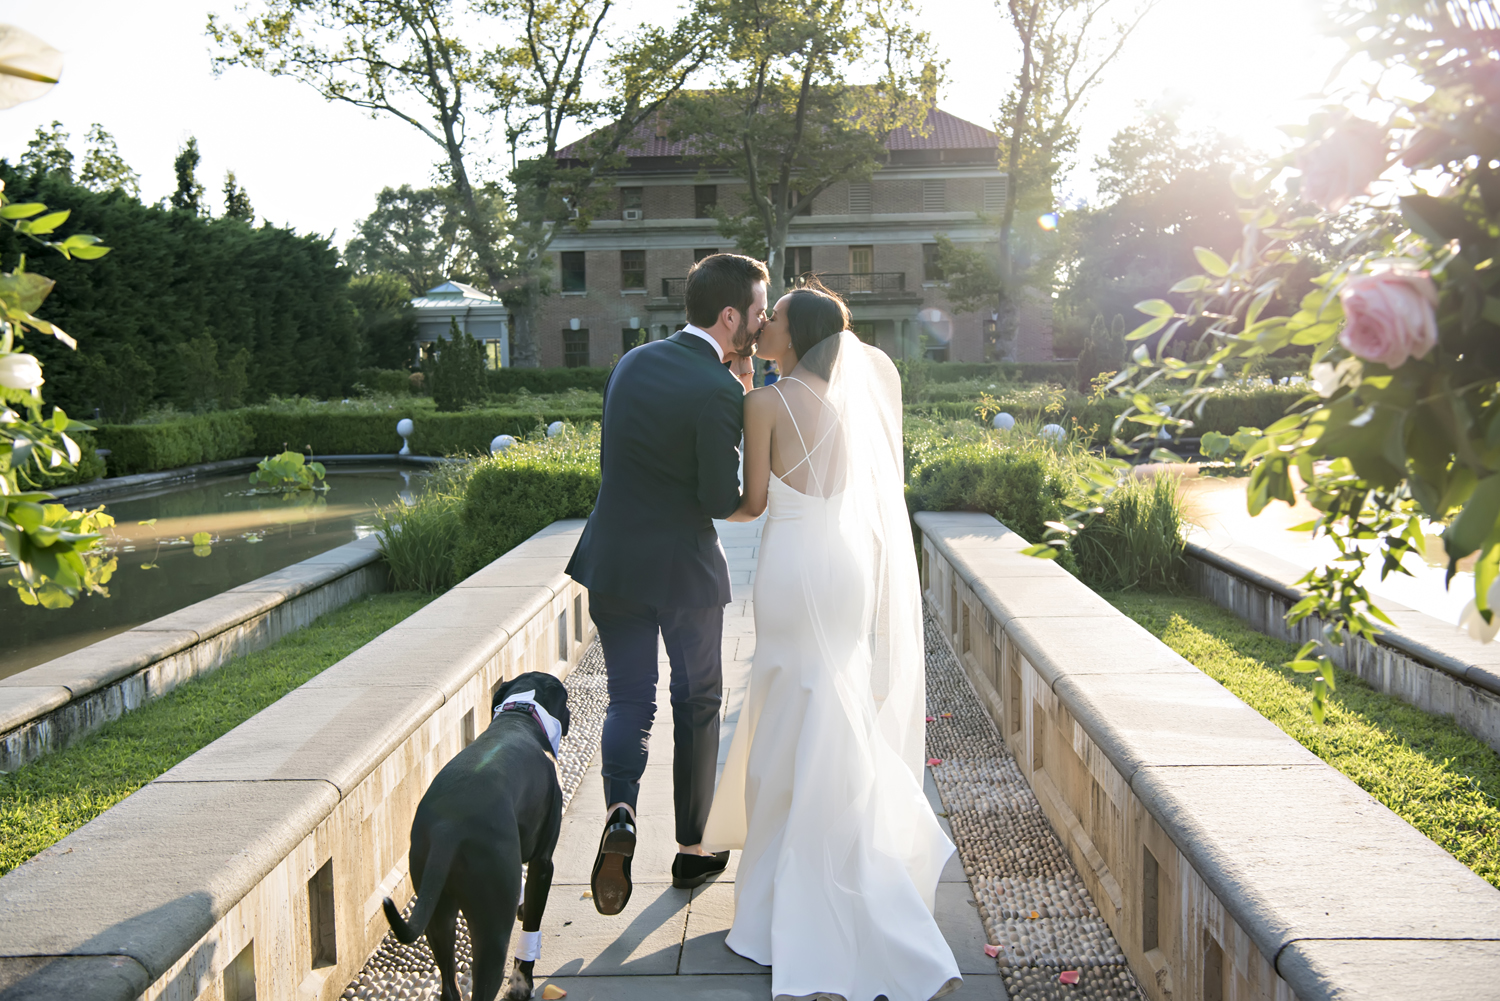 bride, groom, and their dog at the conclusion of their wedding ceremony at Celebrate at Snug Harbor.